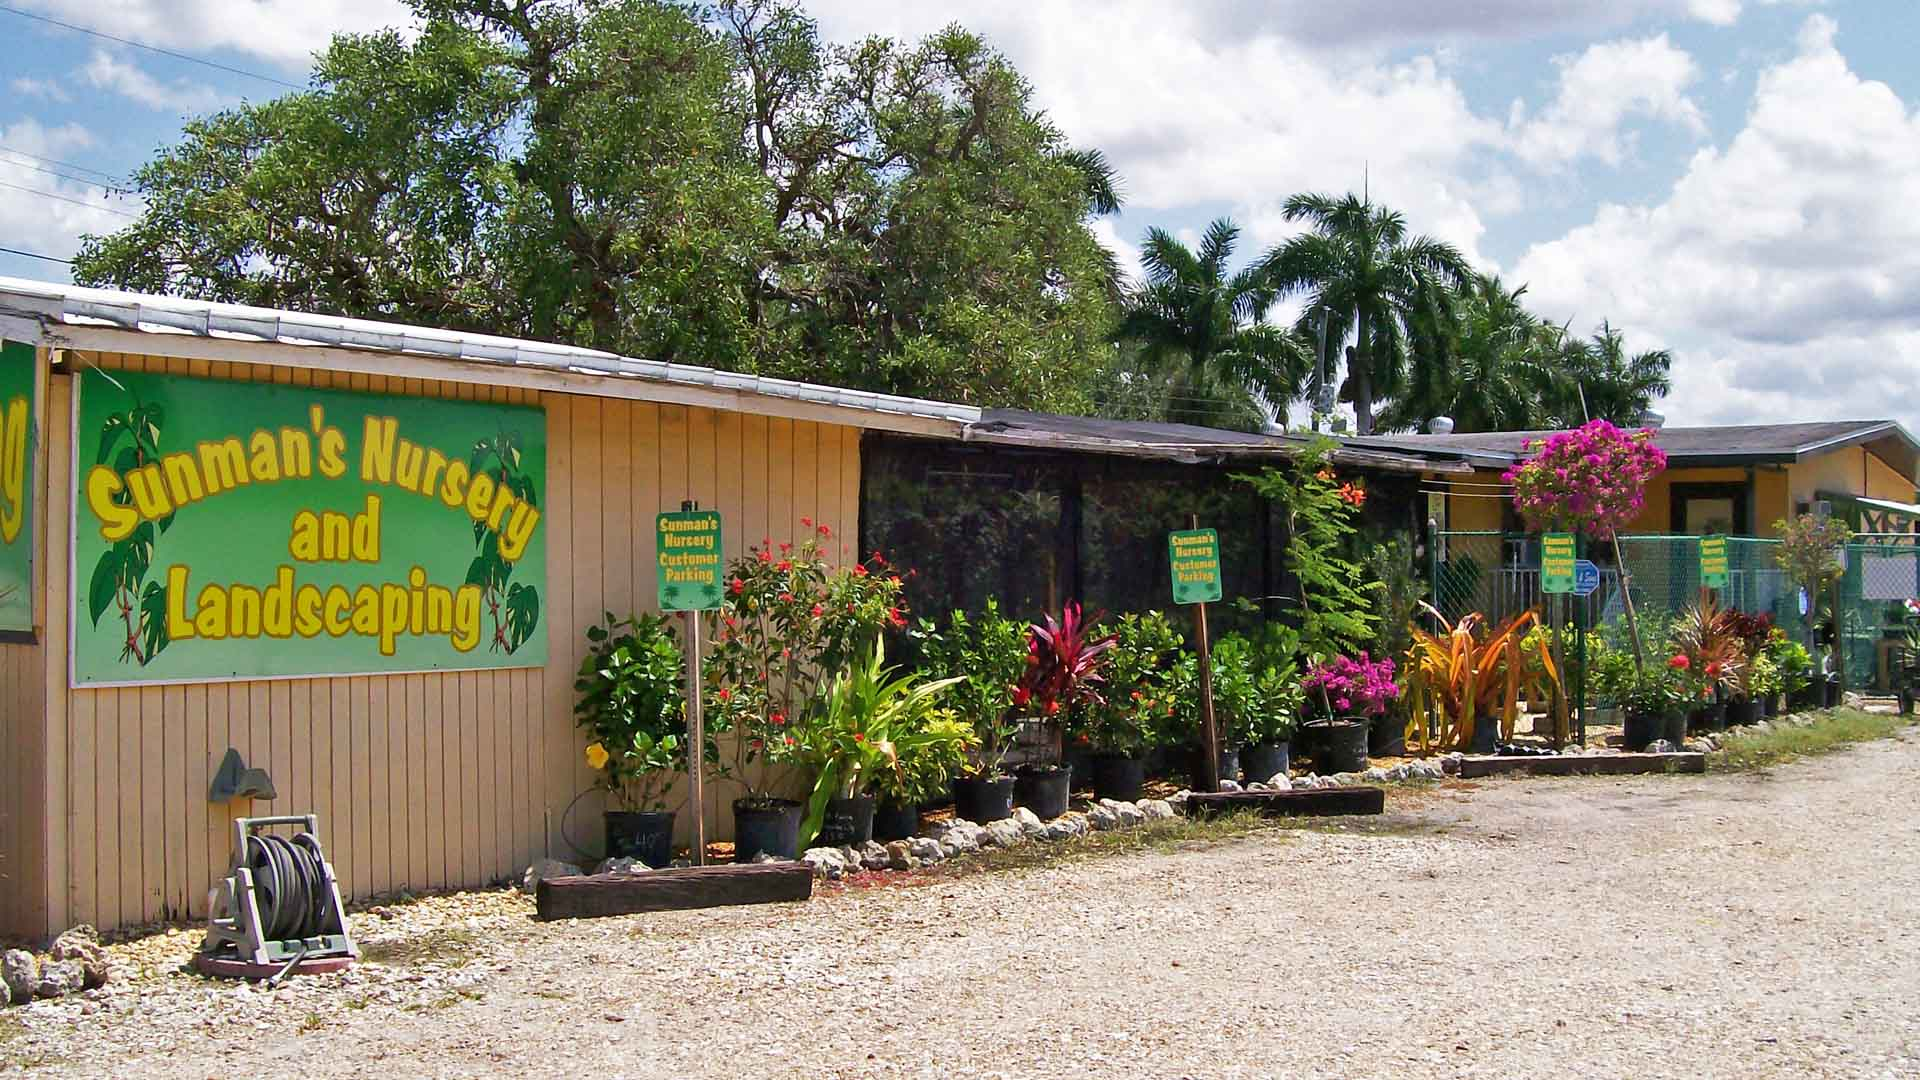 Background photo of Sunman's Nursery in Fort Myers, FL.